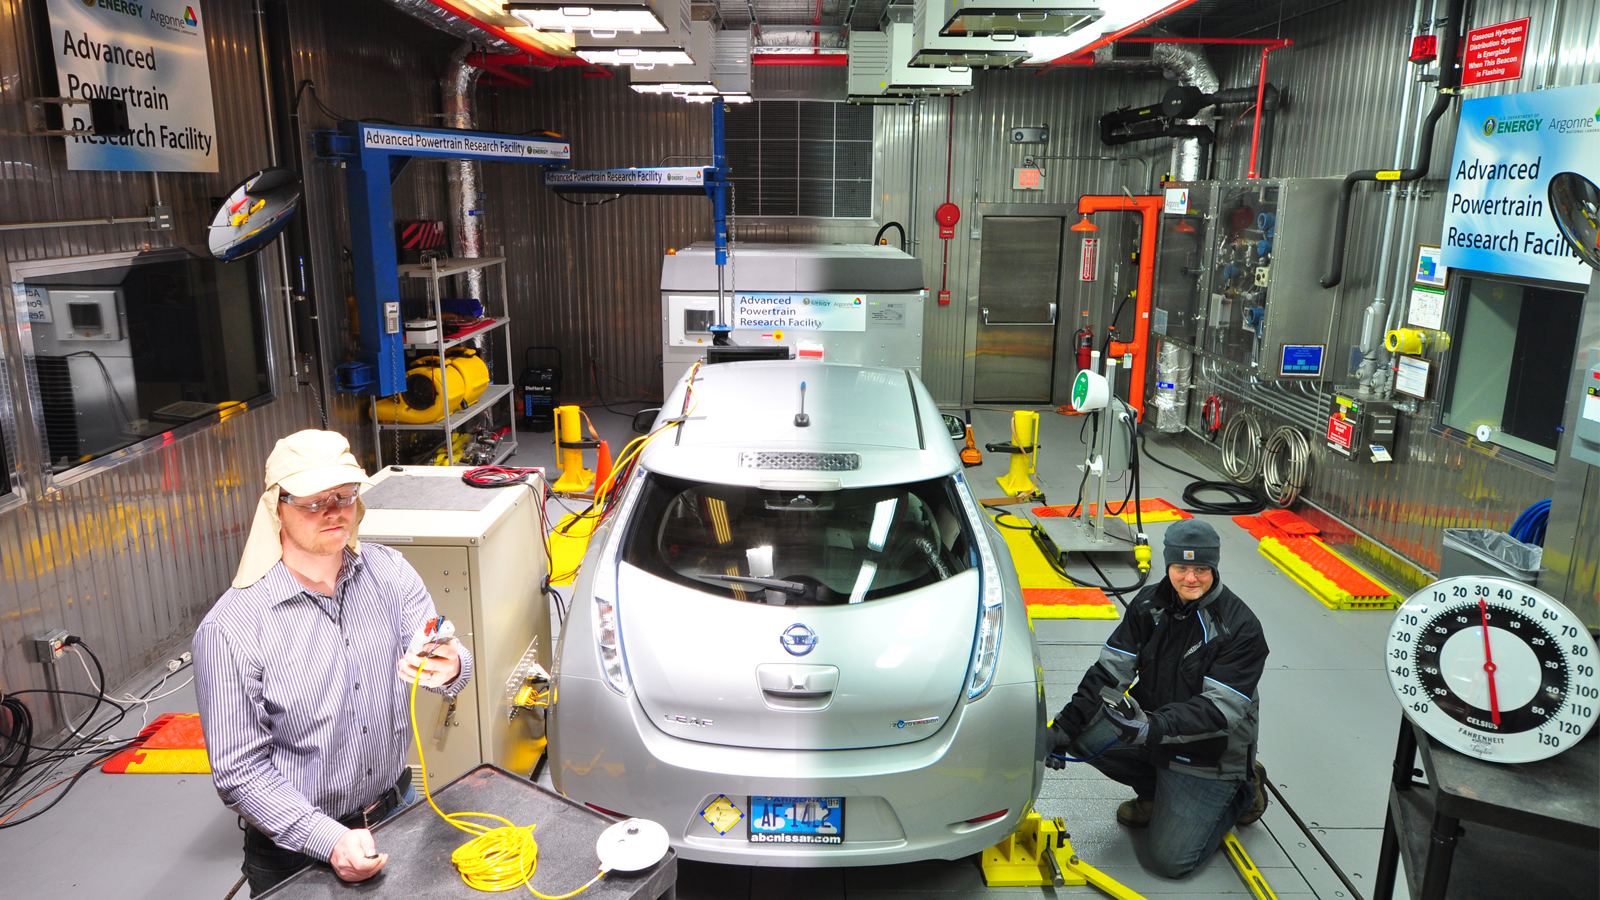 In this split screen image, Argonne engineer Henning Lohse-Busch evaluates an electric vehicle under extreme hot (left) and cold conditions (right). The Advanced Powertrain Research Facility's Environmental Test Cell is equipped to evaluate vehicles and their components at a temperature range of 20°F to 95°F.